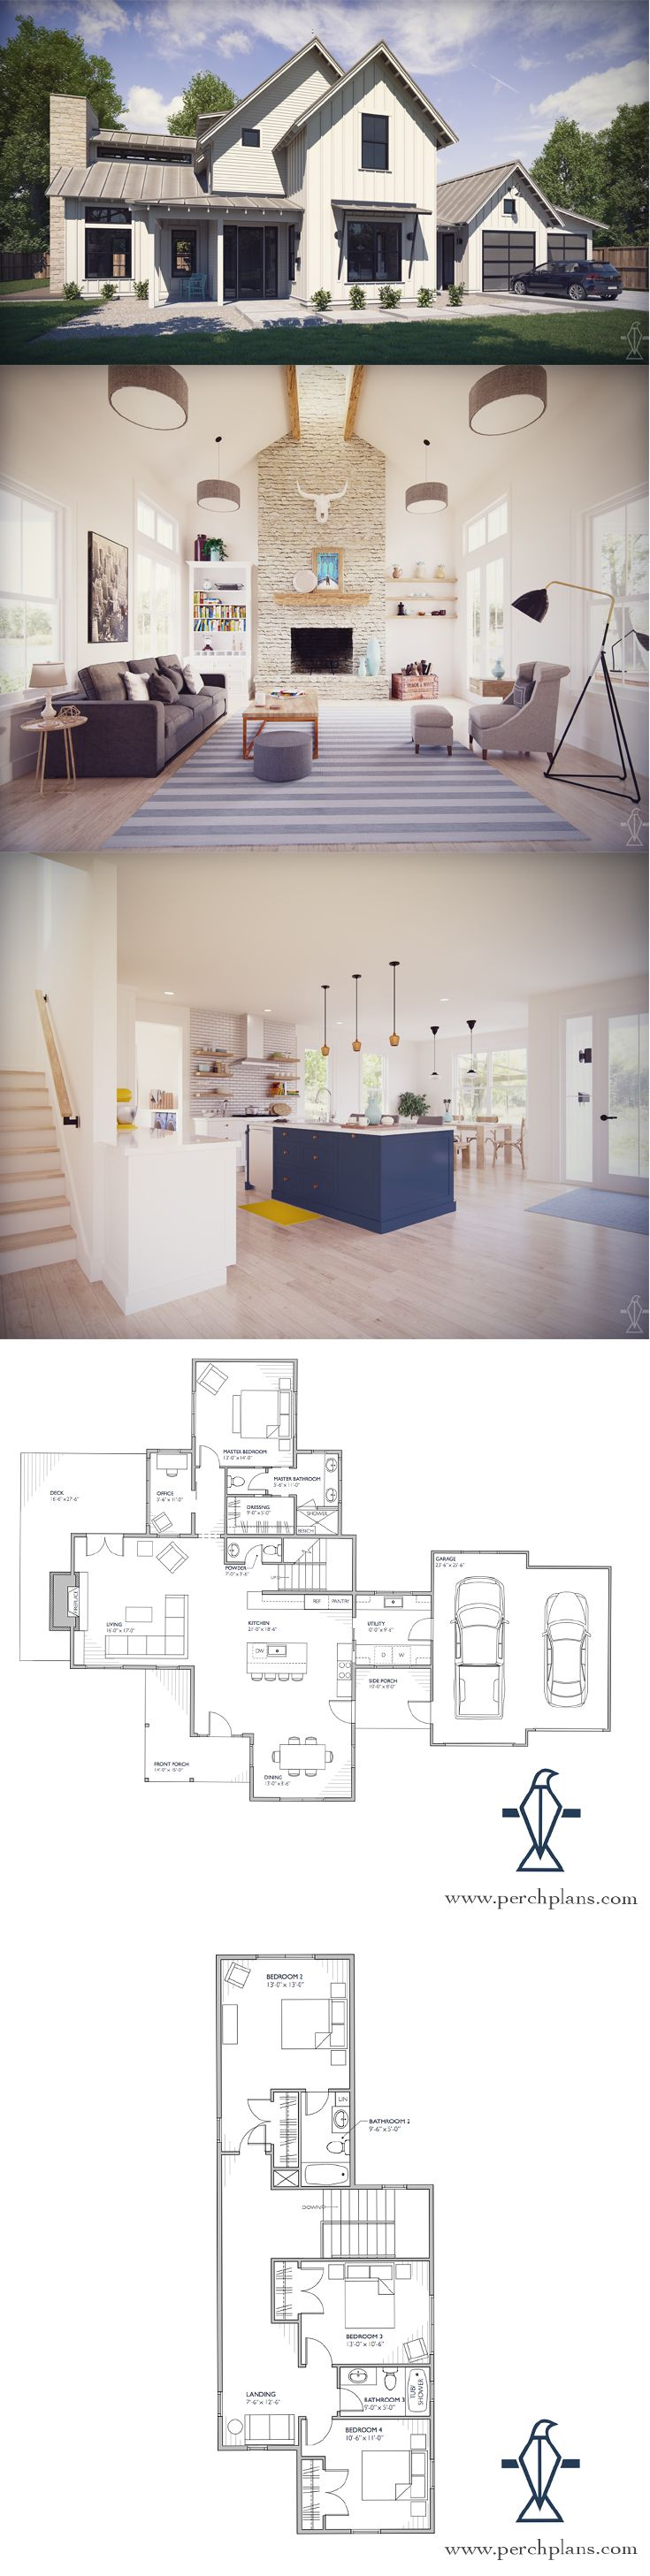 best 25 open concept floor plans ideas on pinterest open floor our normande modern farmhouse floor plan is perfect for families with its open concept living space